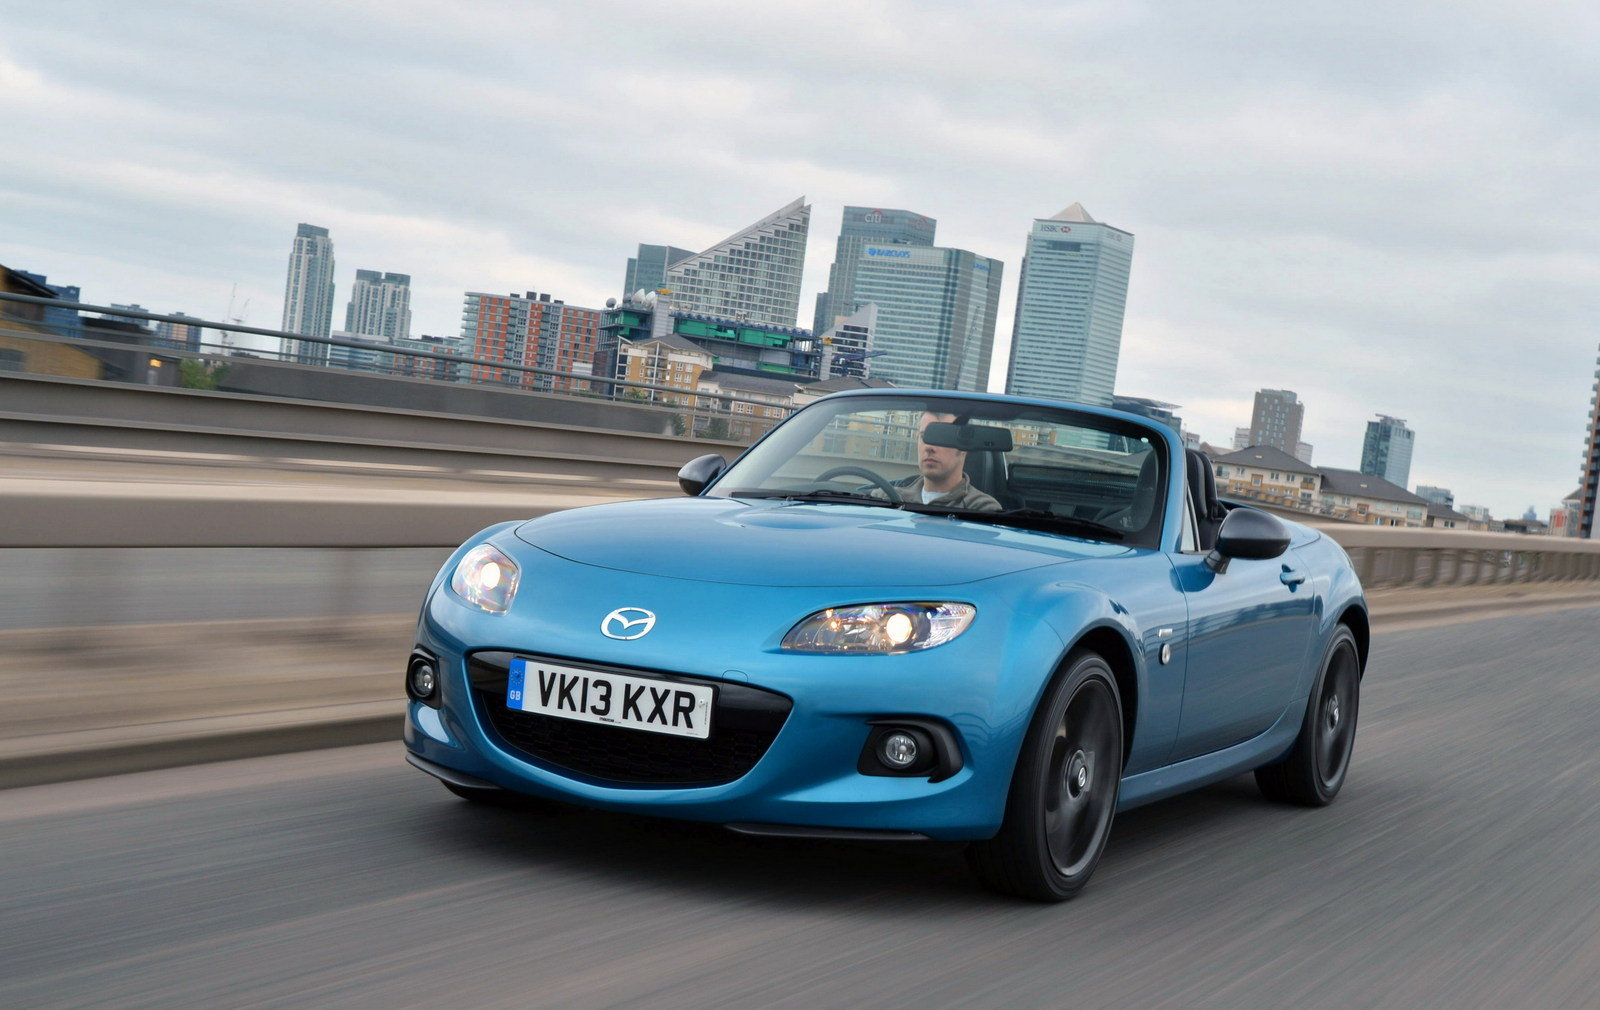 2013 mazda mx 5 sport graphite review top speed. Black Bedroom Furniture Sets. Home Design Ideas